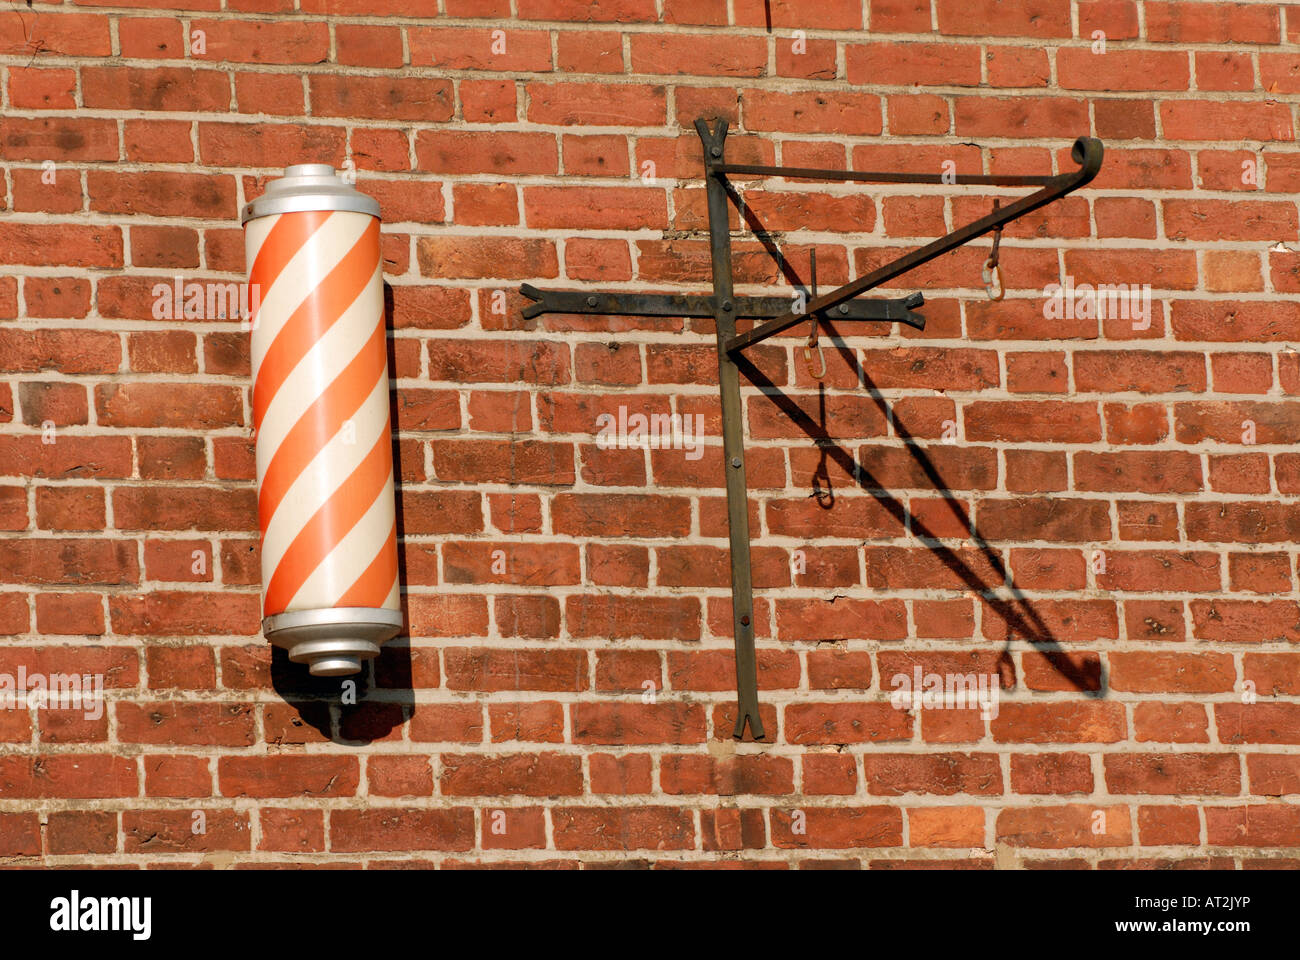 traditional barbers pole advertising hairdressers hair cutting services outside of an authentic old fashioned barbers - Stock Image